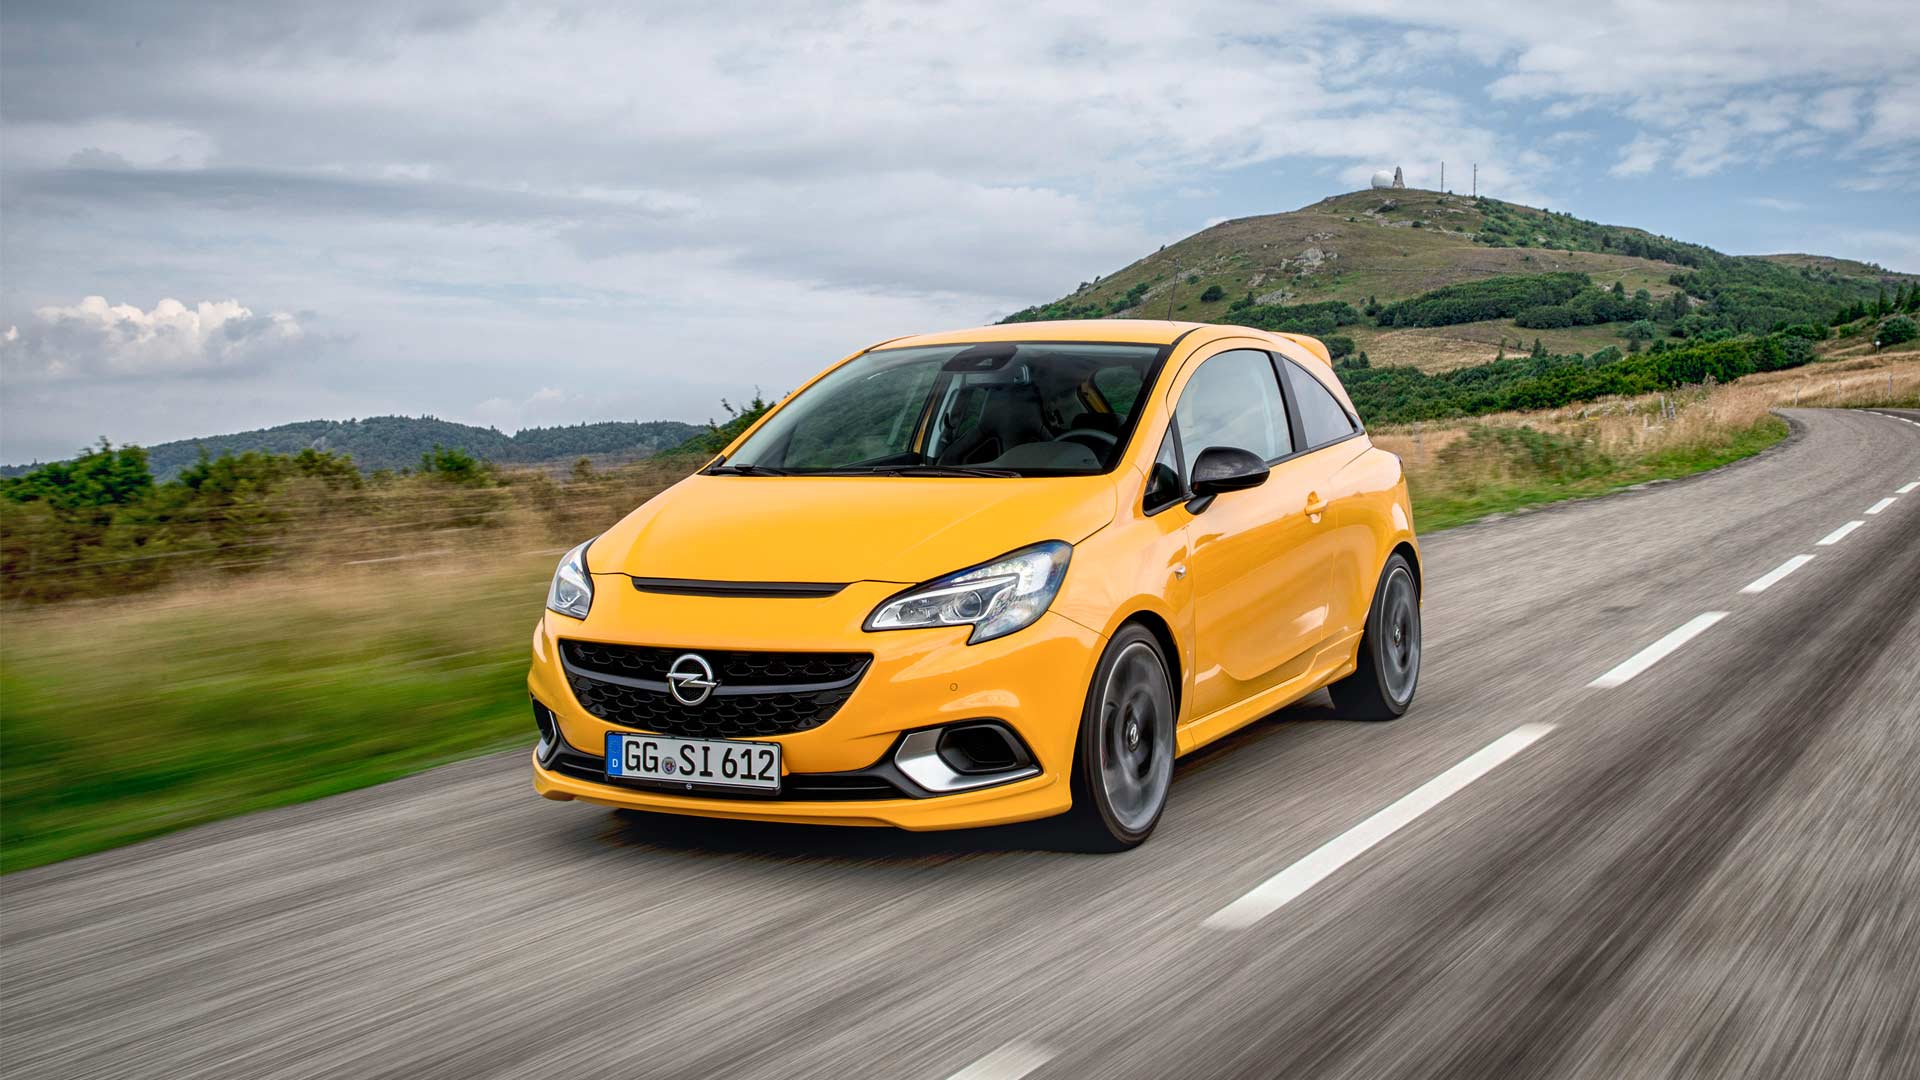 2018 opel corsa gsi gets 1 4 turbo sports chassis autodevot. Black Bedroom Furniture Sets. Home Design Ideas